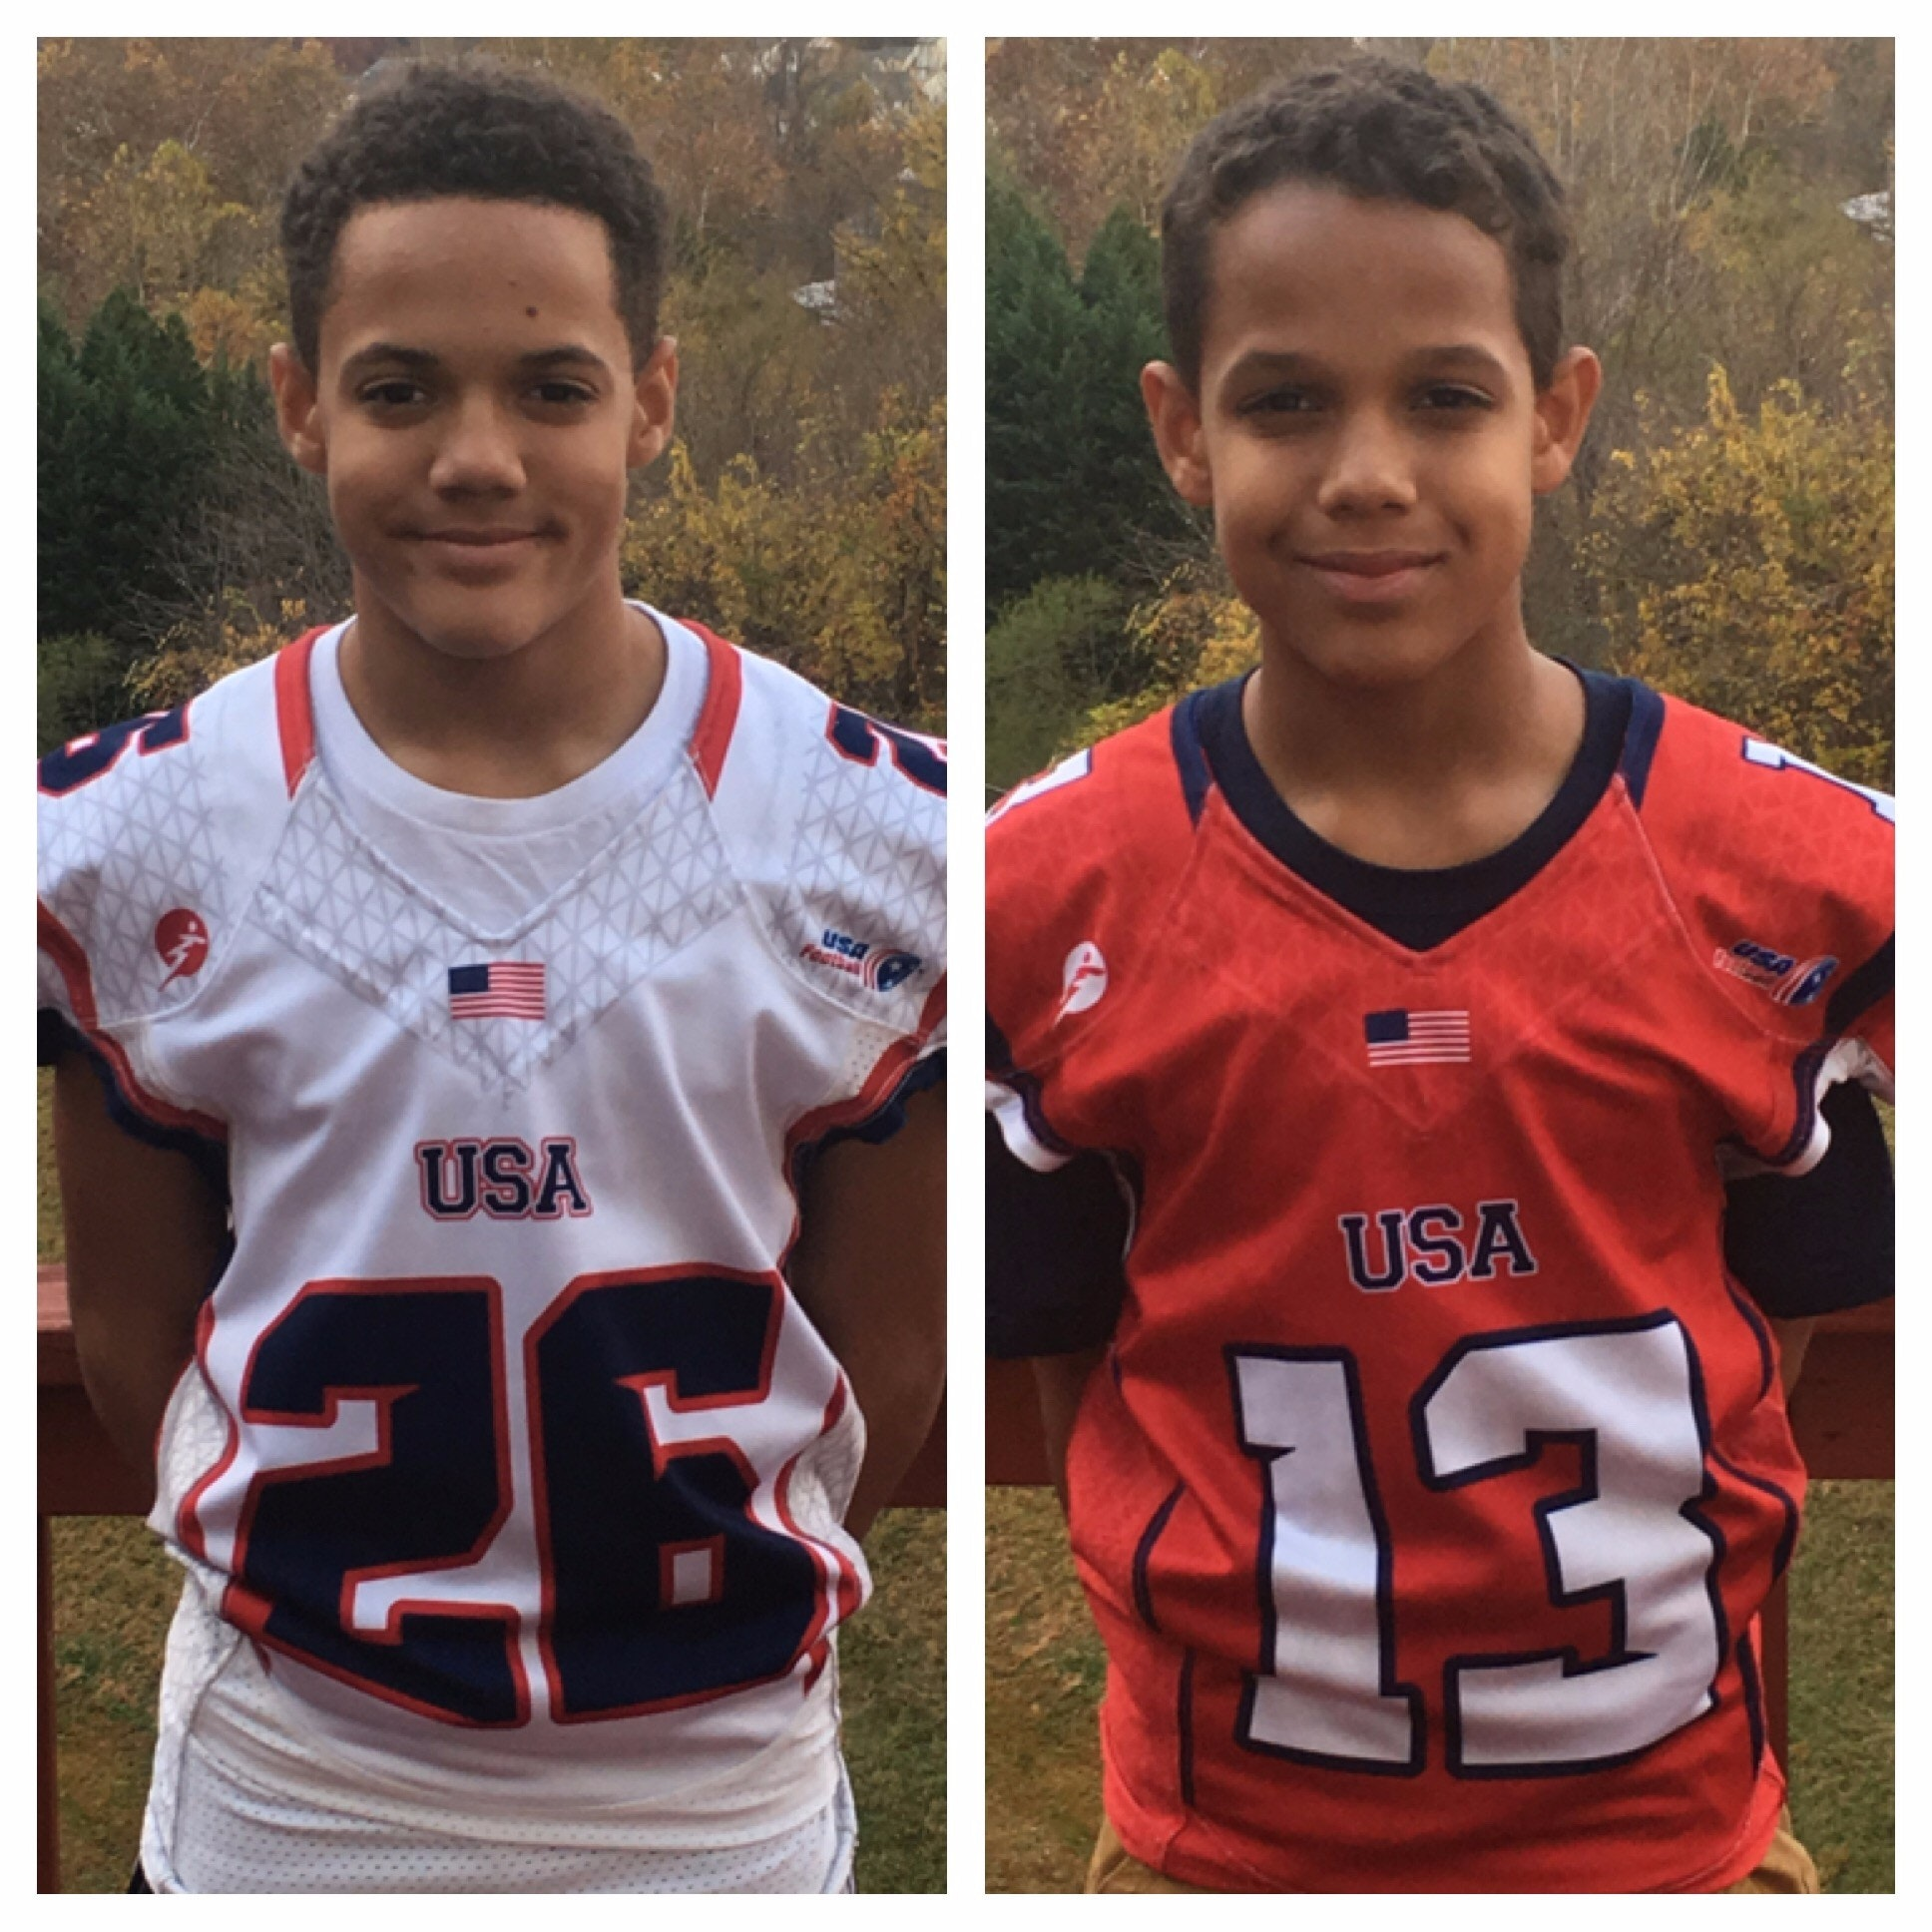 Barnes Boys - Dream trip for USA Football International Bowl